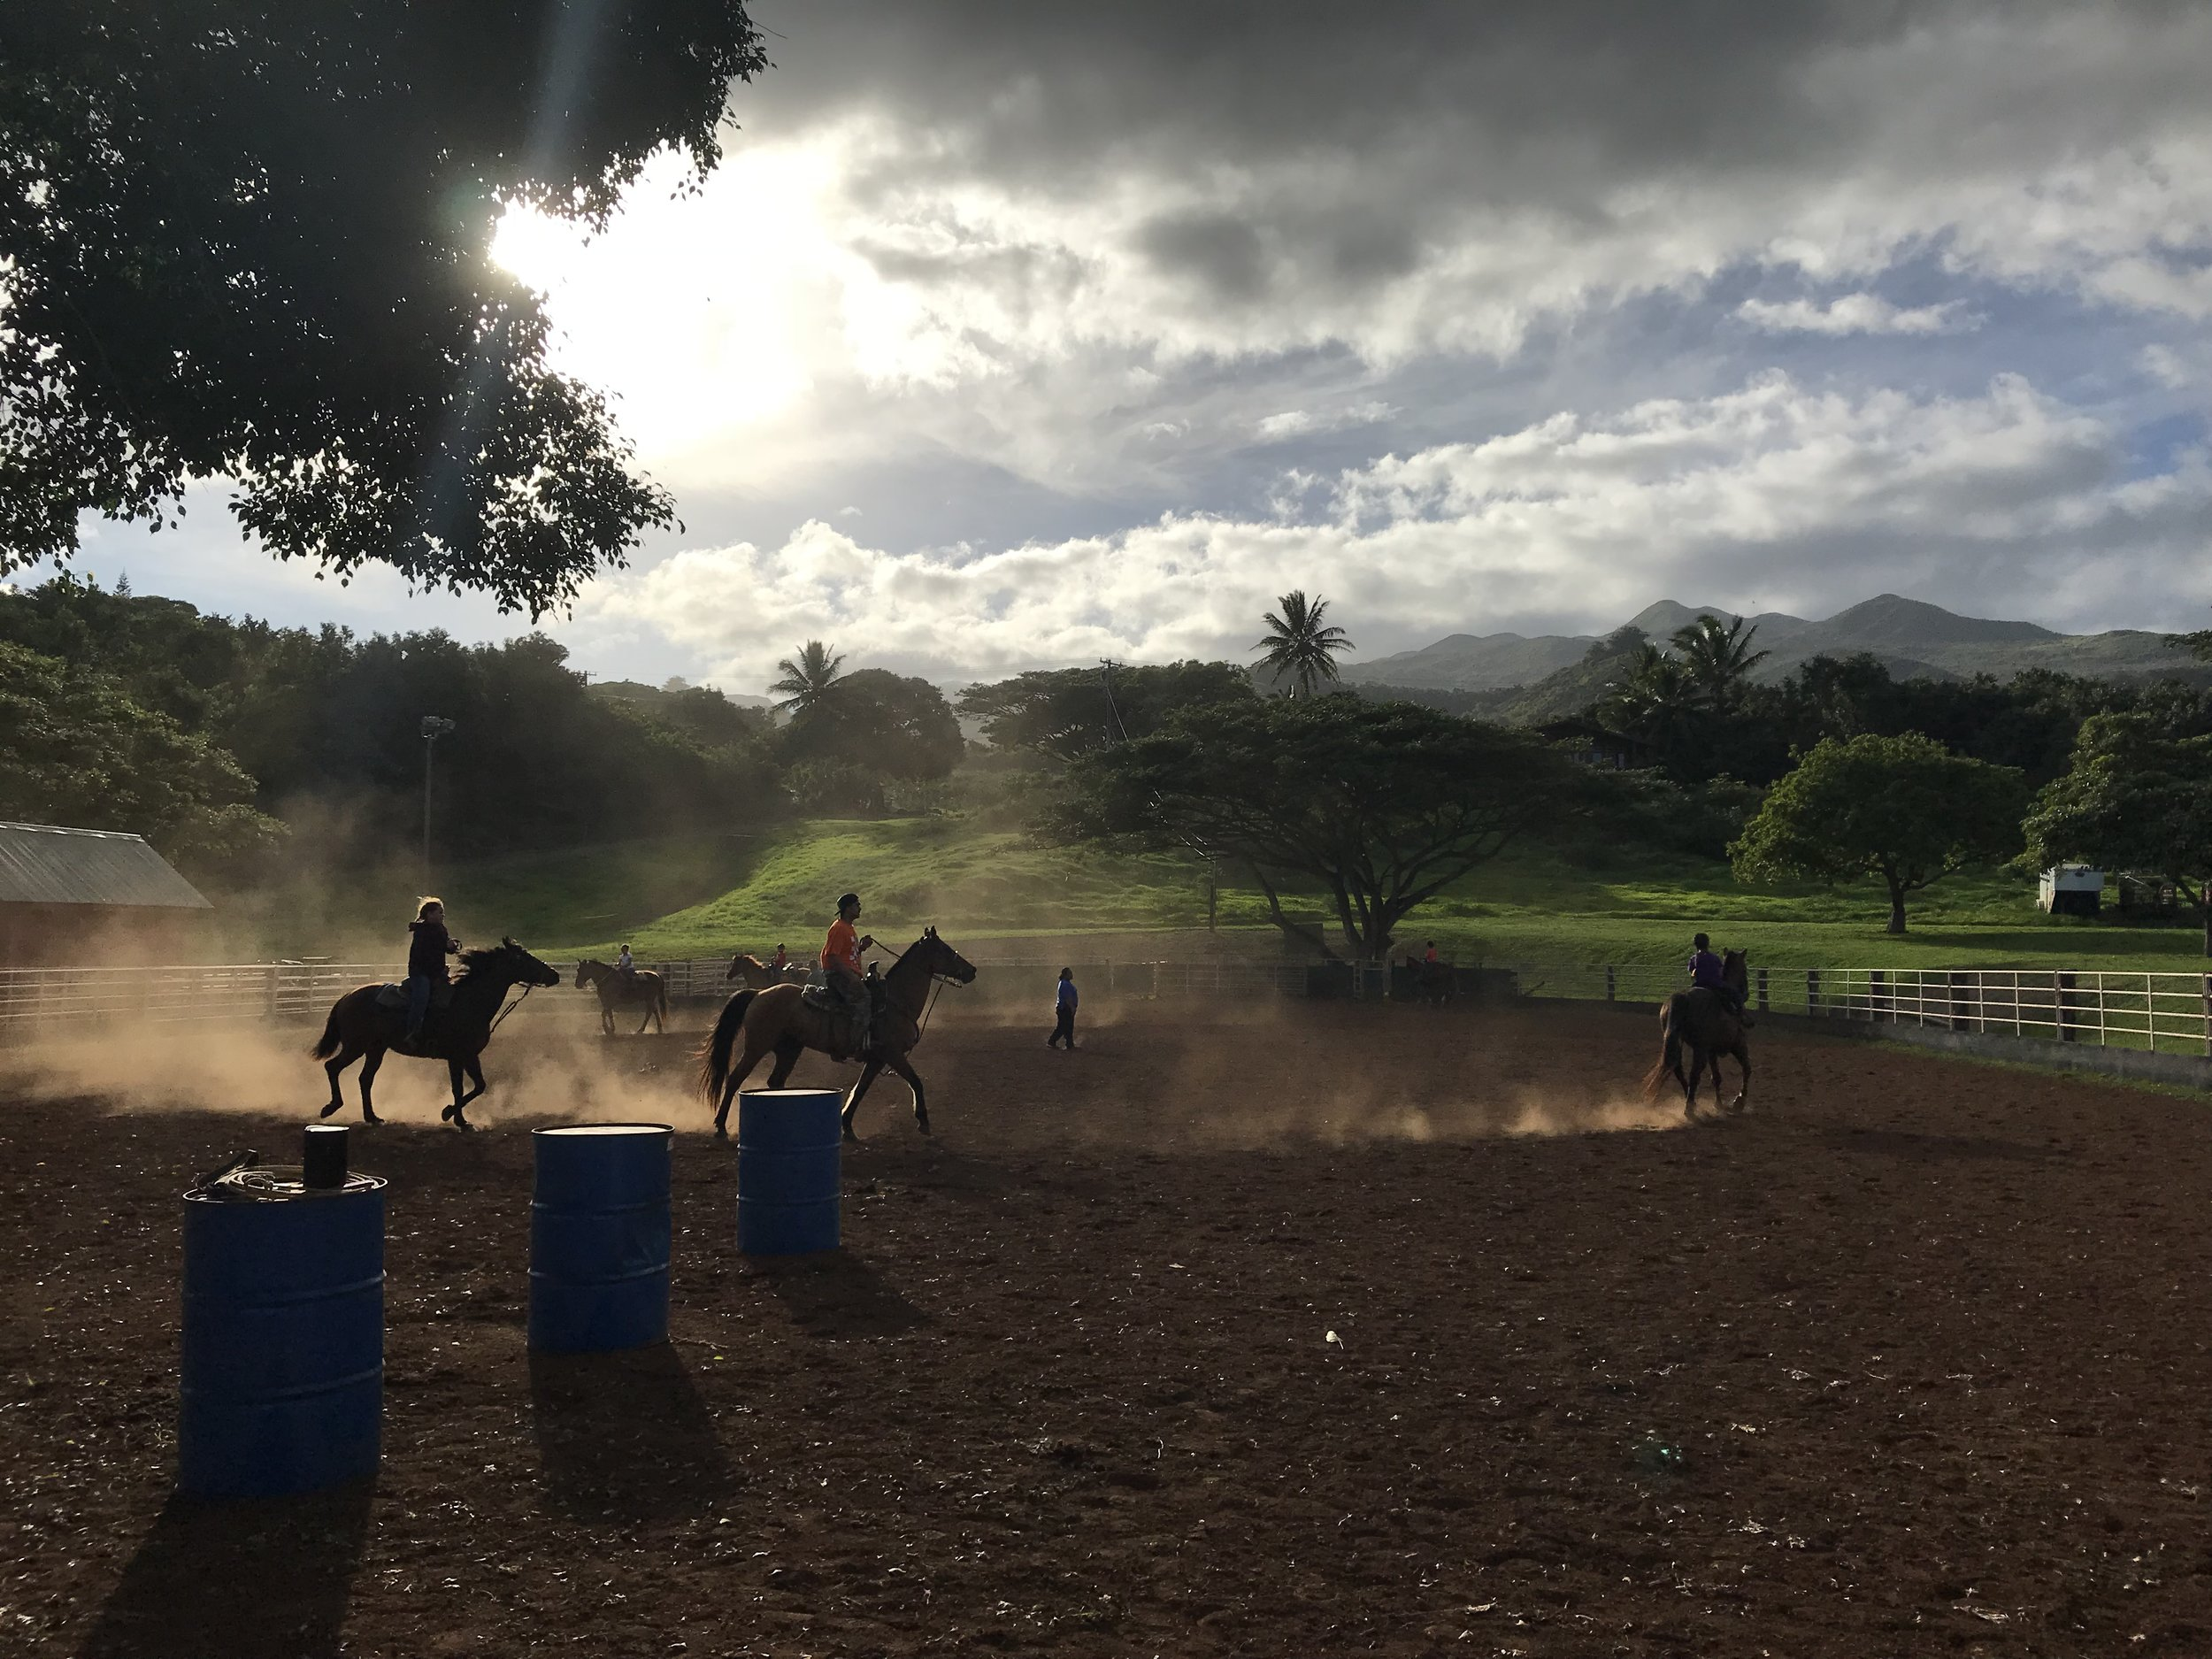 Cowboys teaching the next generation how to rope at Hana Ranch.